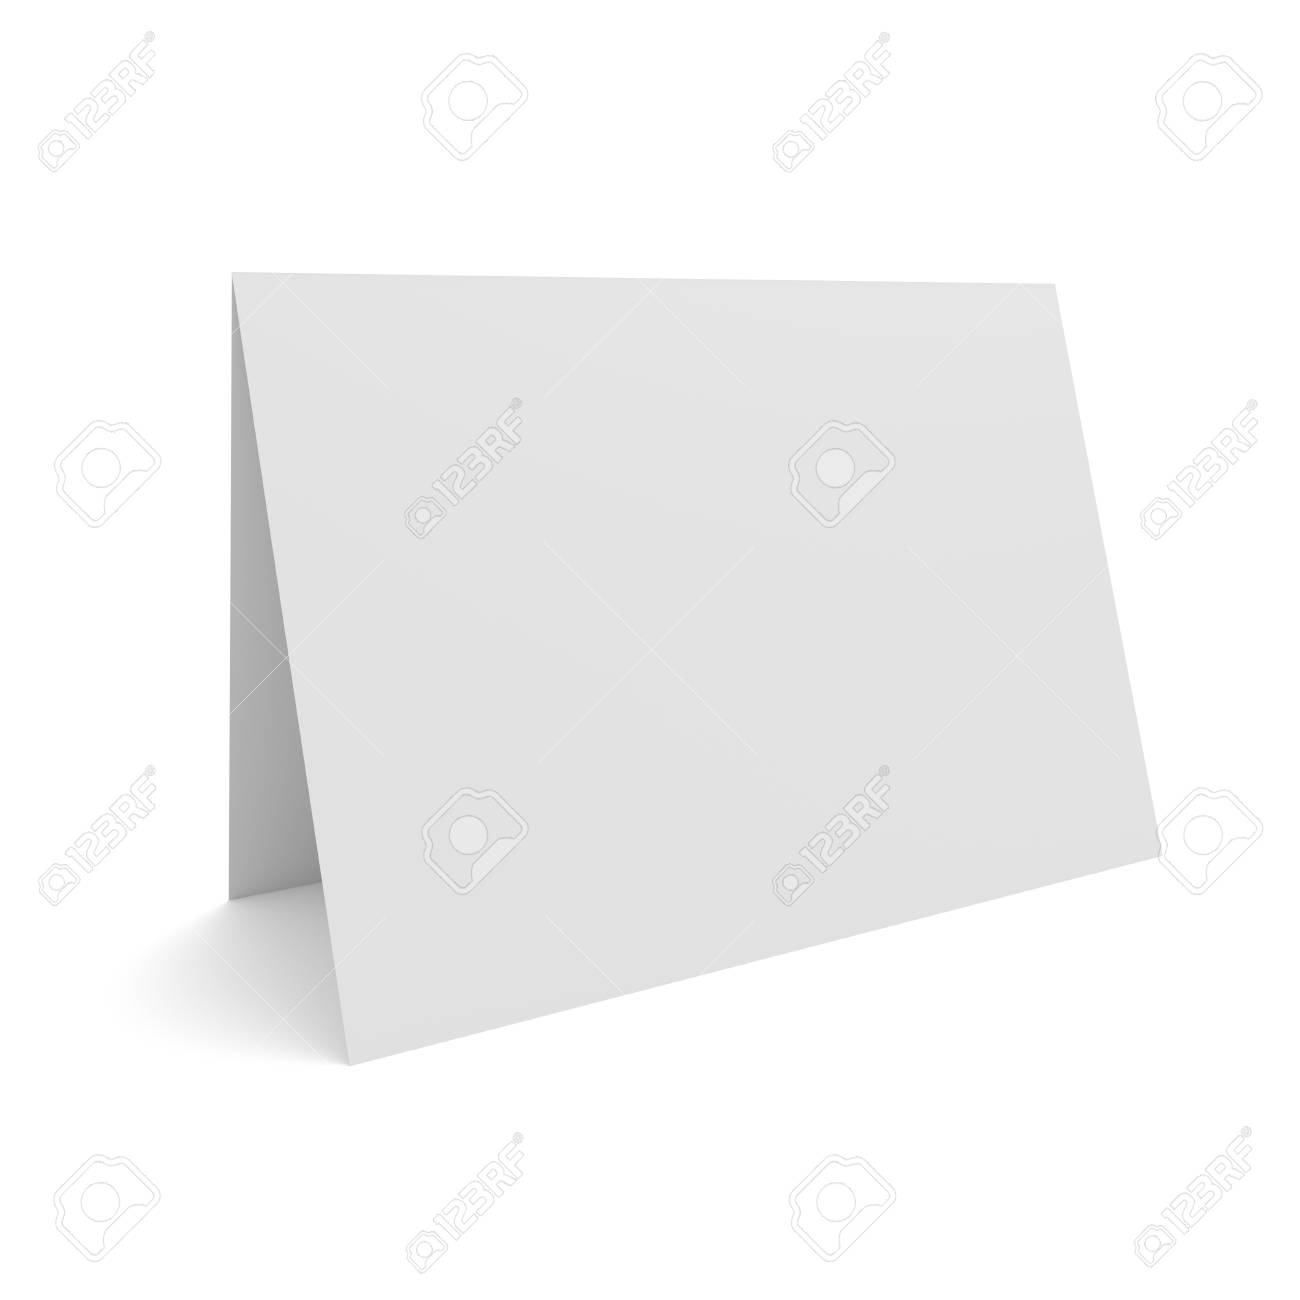 Blank 3d Illustration Greeting Card Isolated On White Empty Stock